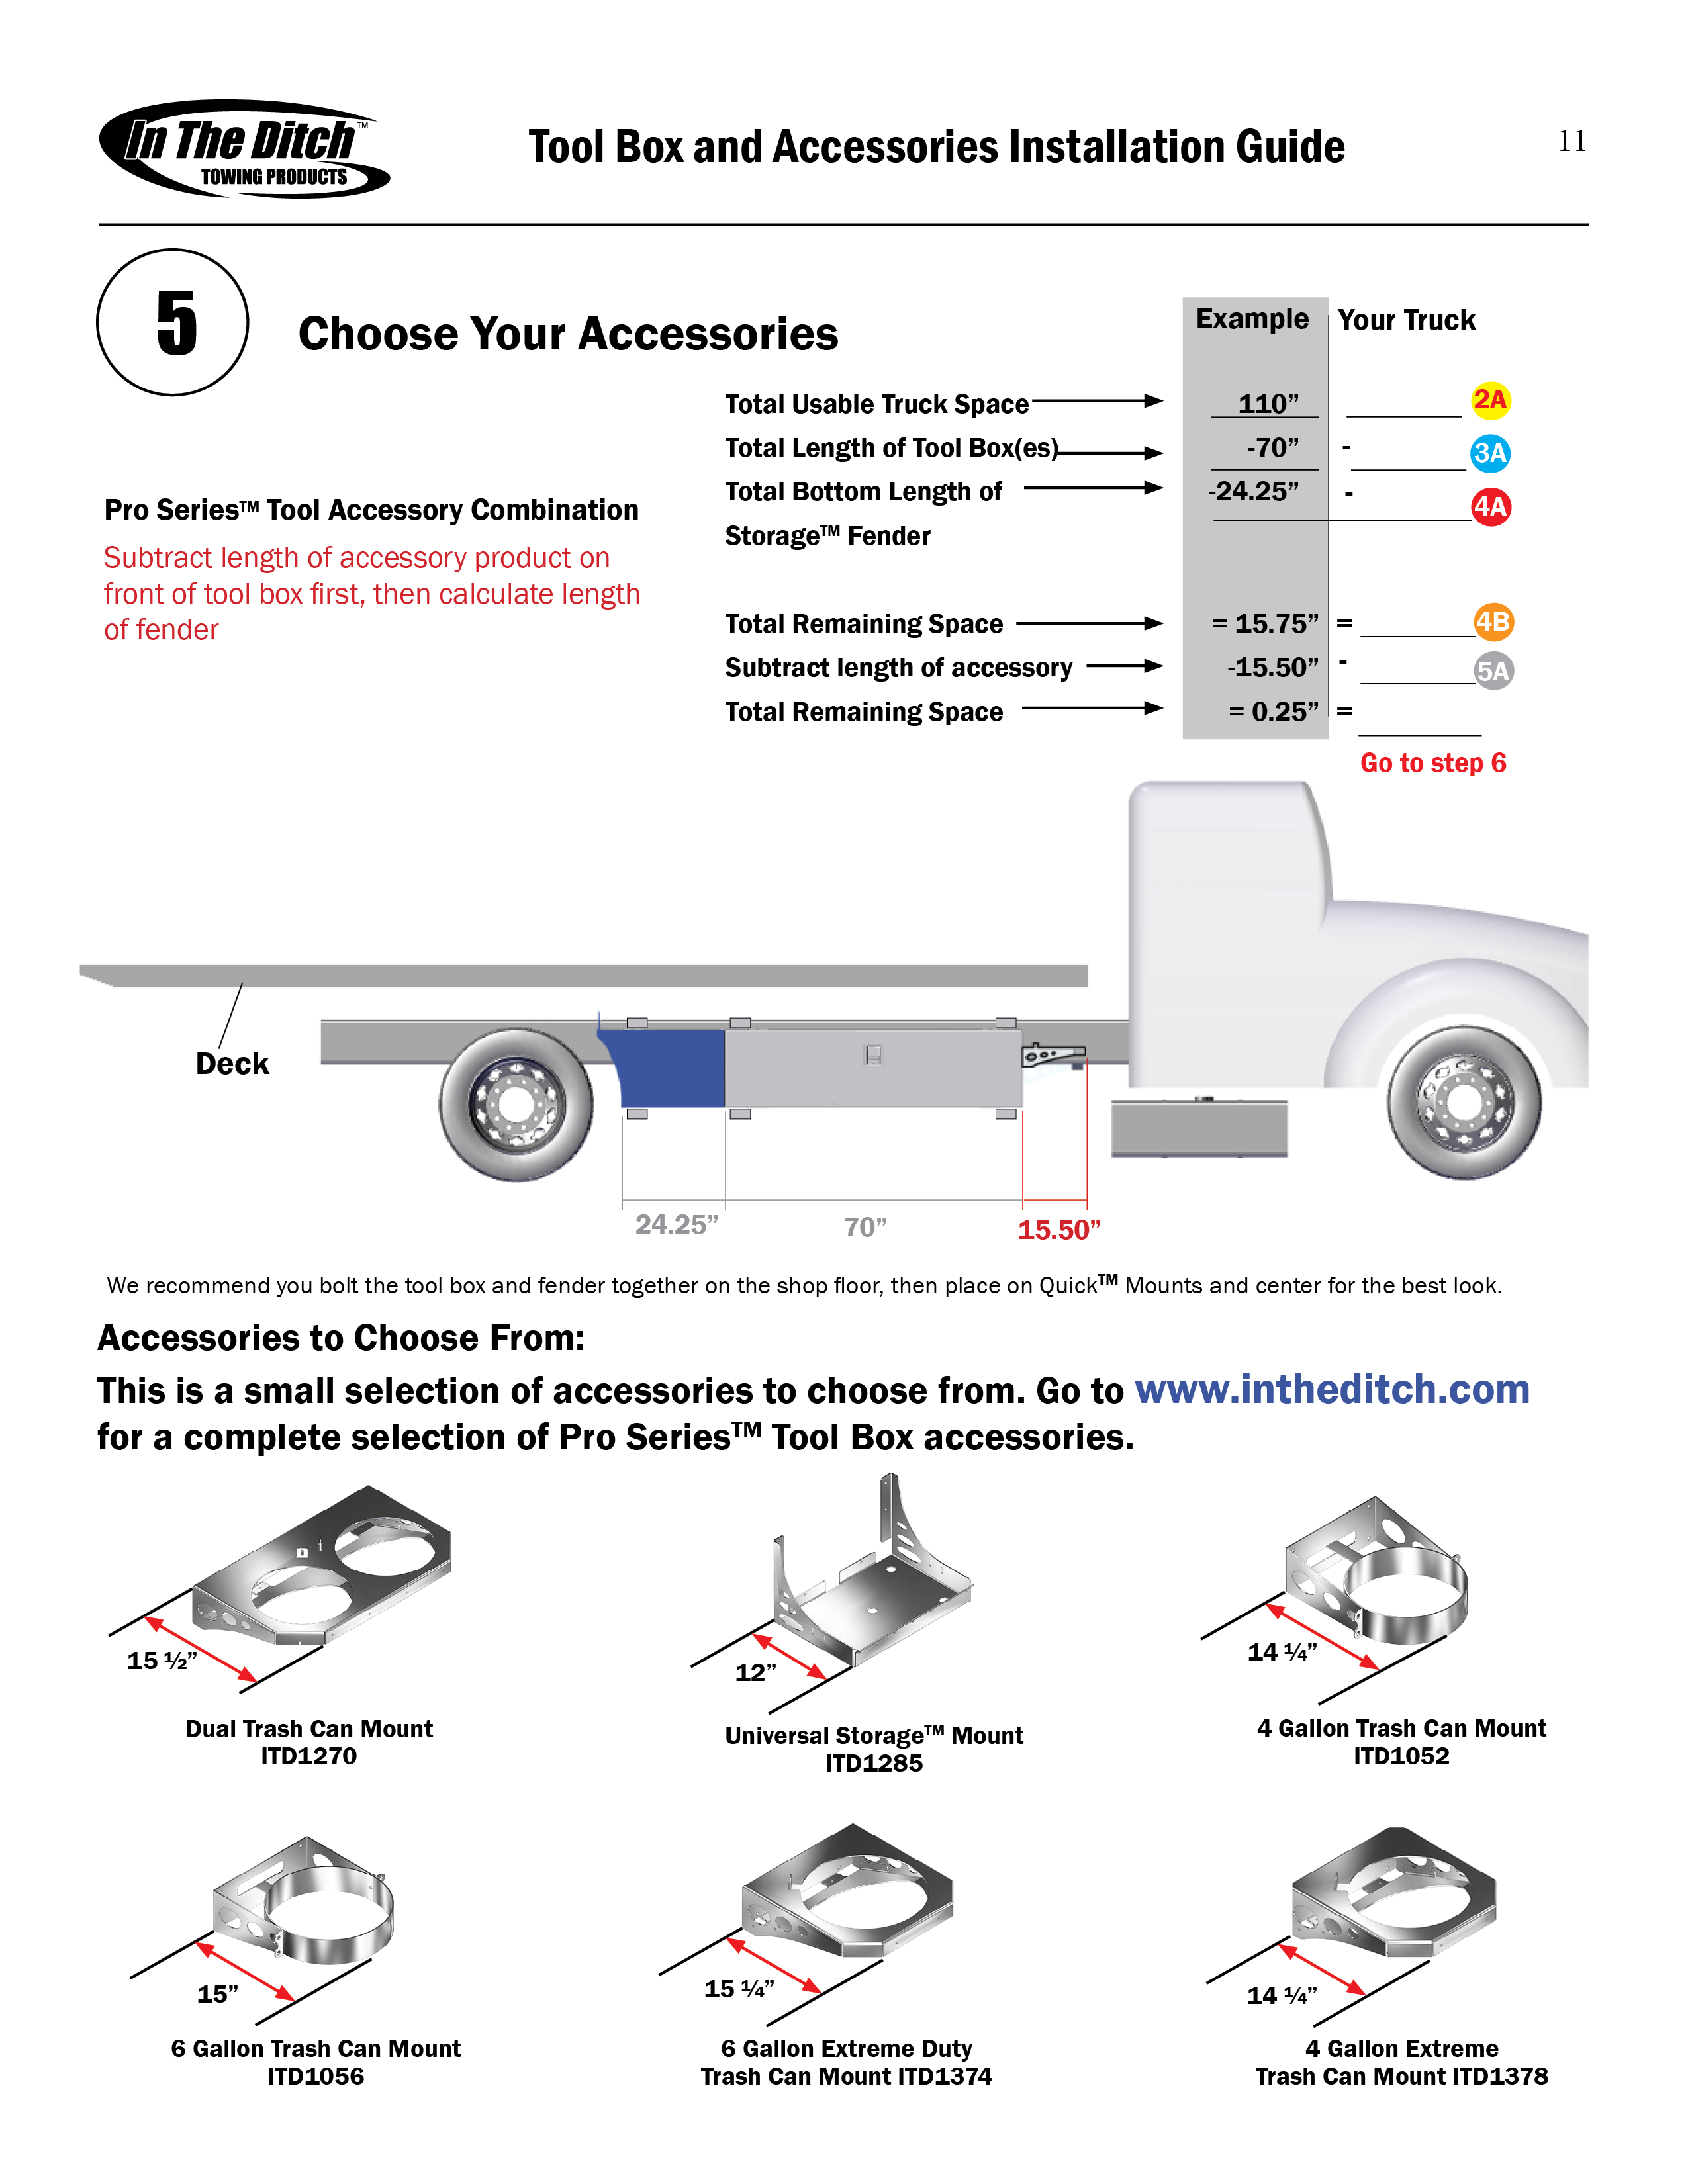 ITD0250 ITD Tool Box and Accessories Installation Guide5